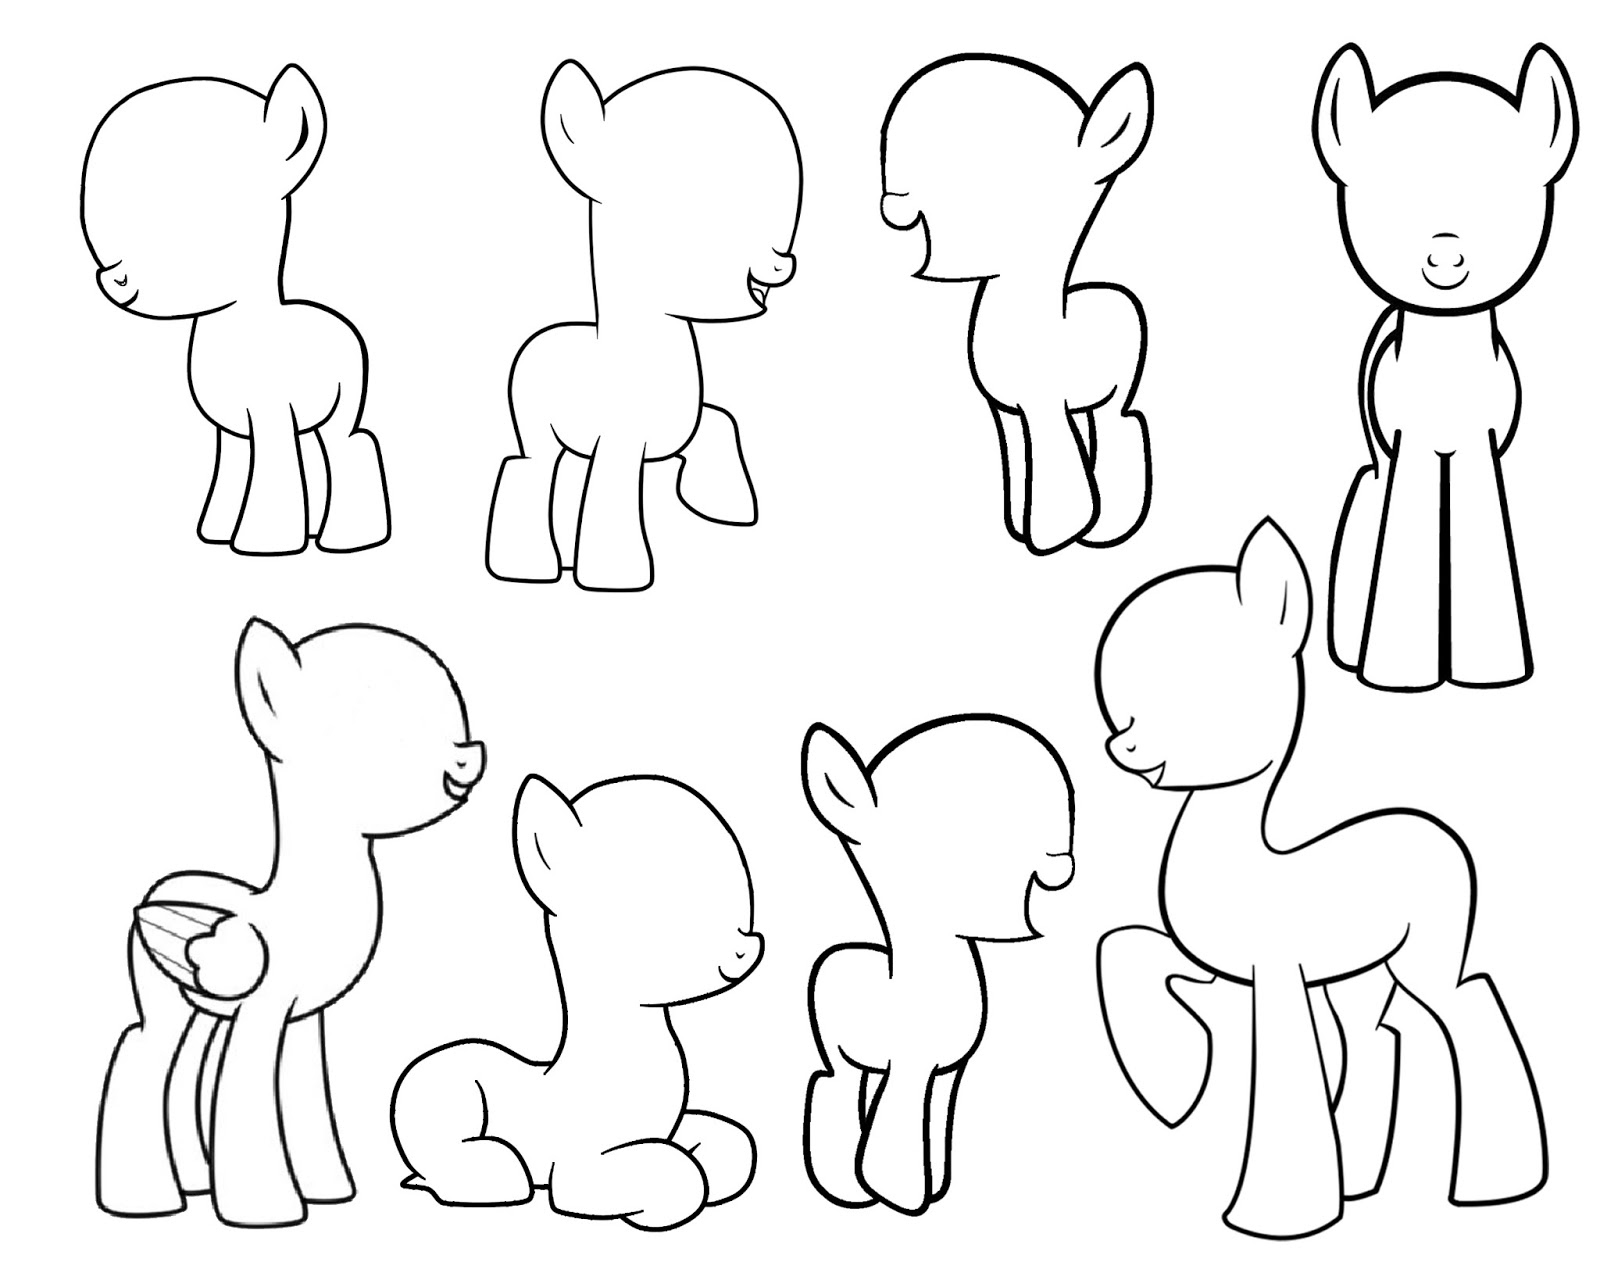 My little pony body drawing doodle craft design and draw your - Design And Draw Your Own My Little Pony